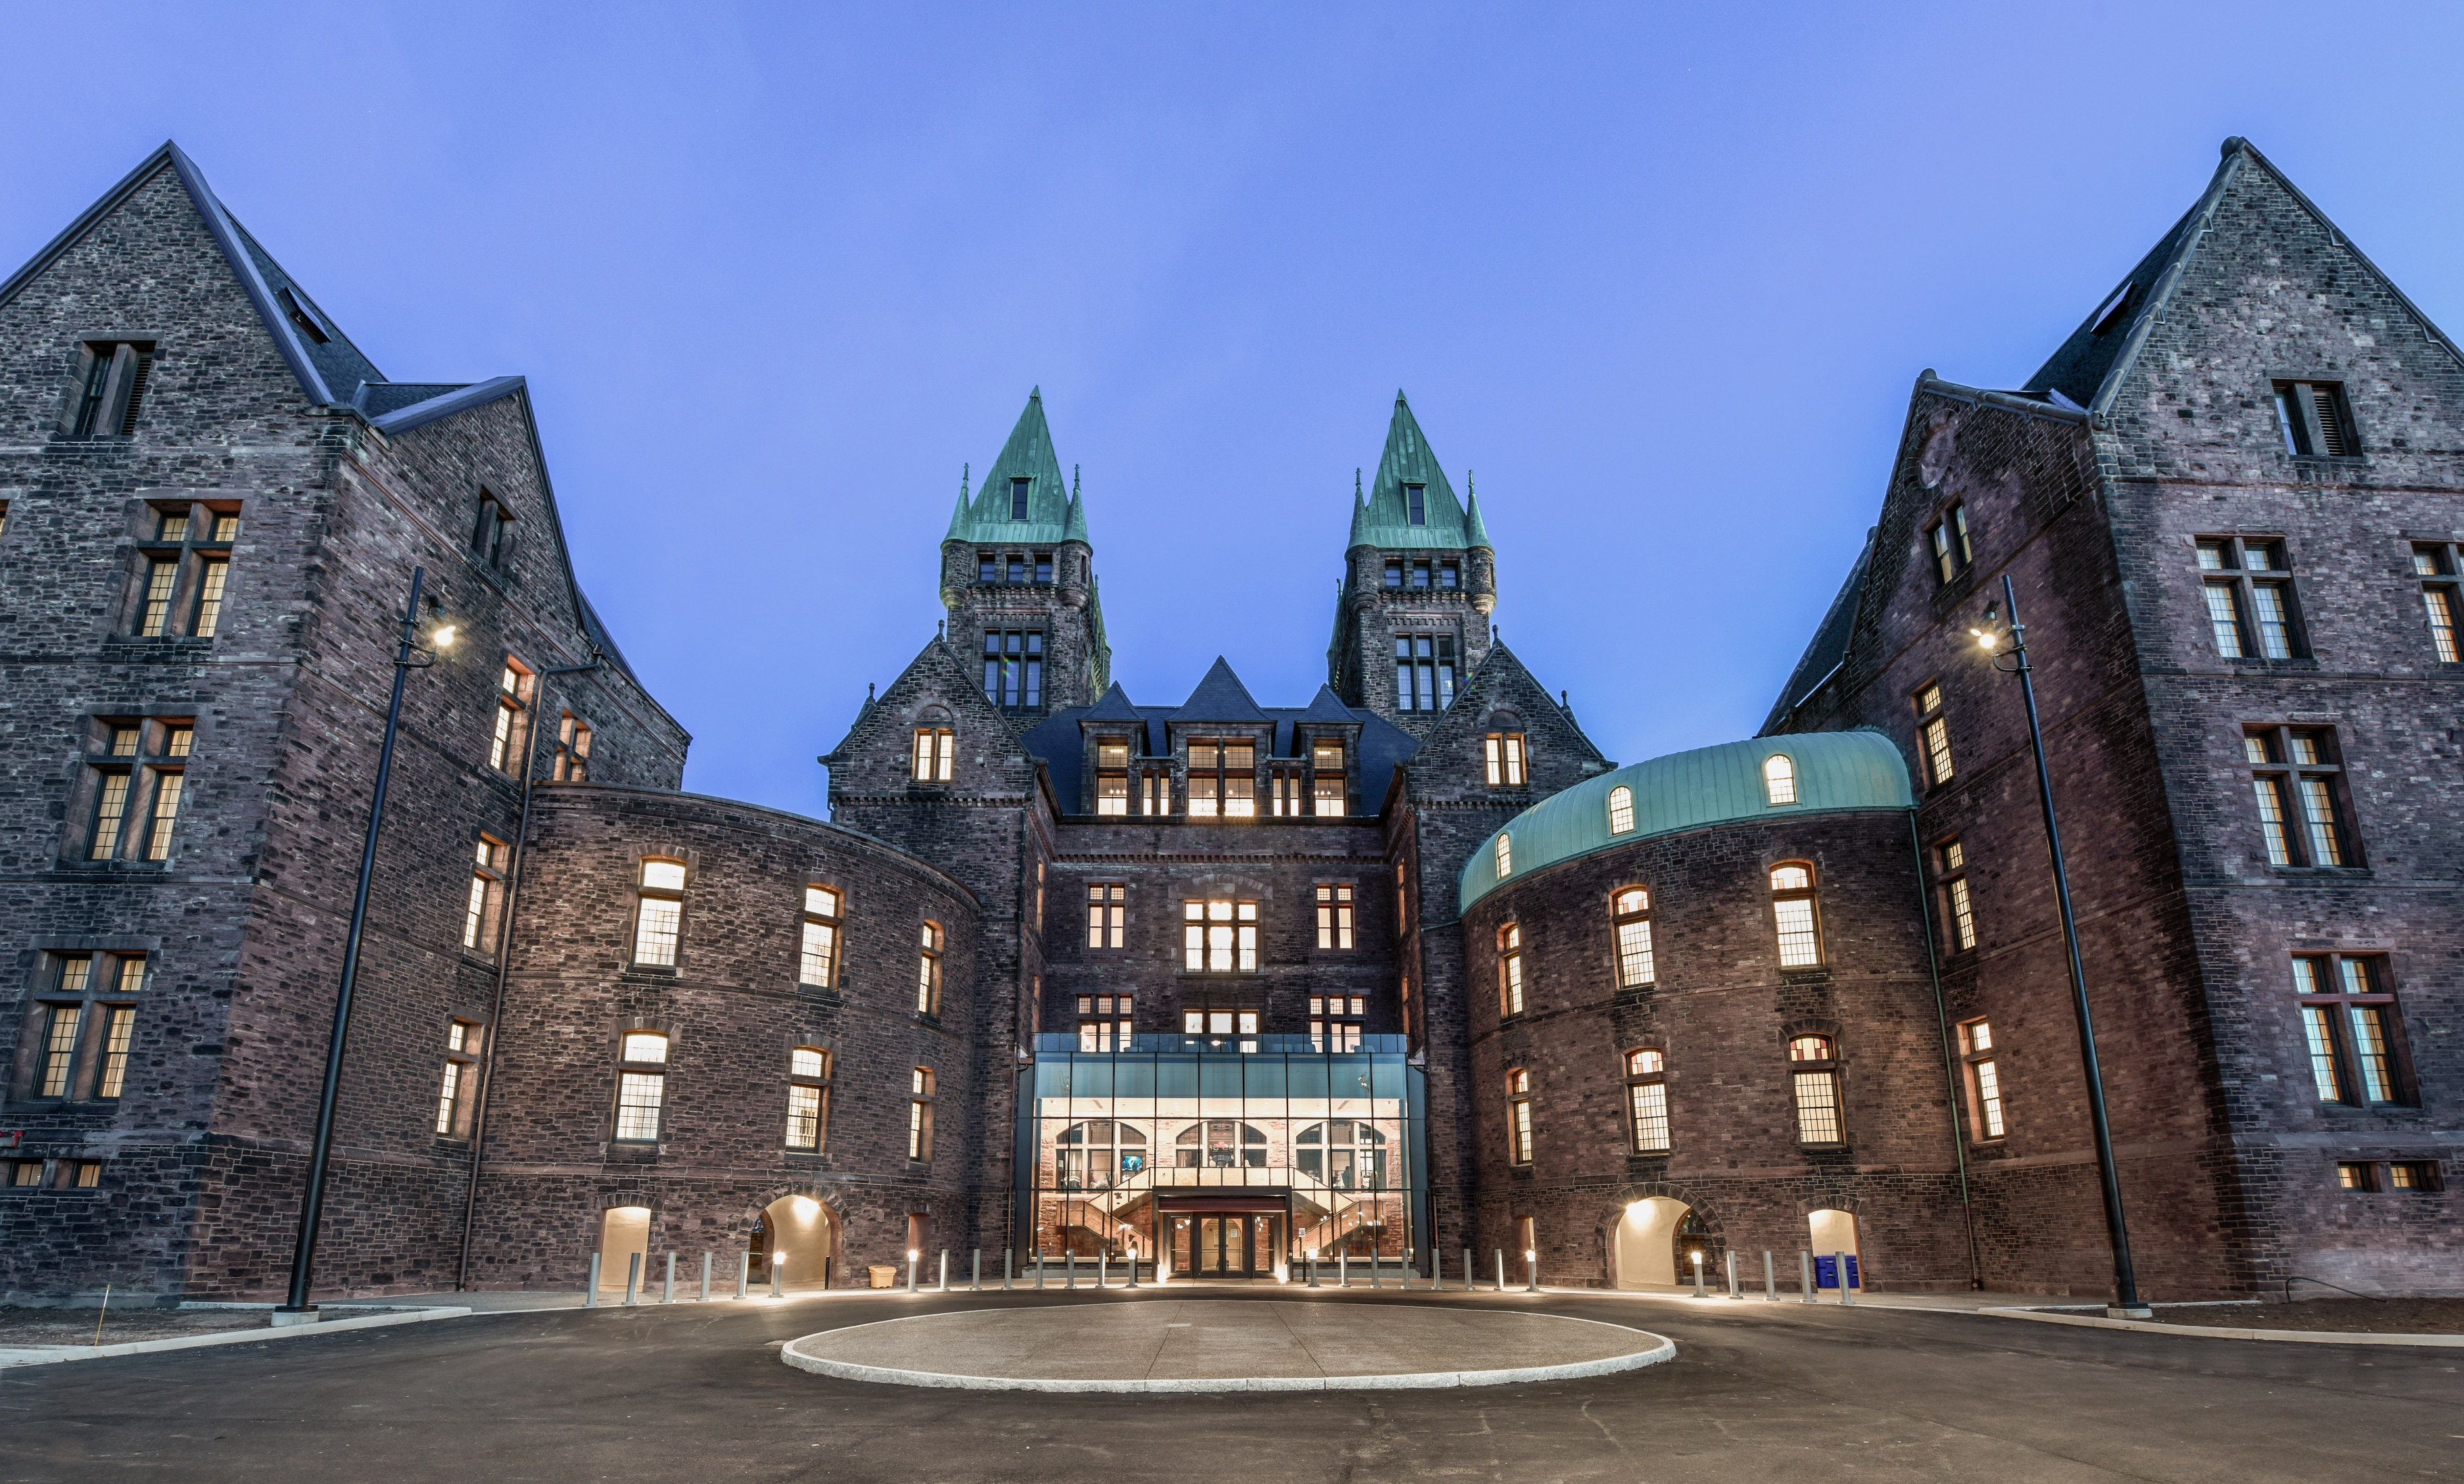 Buffalo S Newest Hotel Has Opened In Abandoned Asylum Lonely Planet